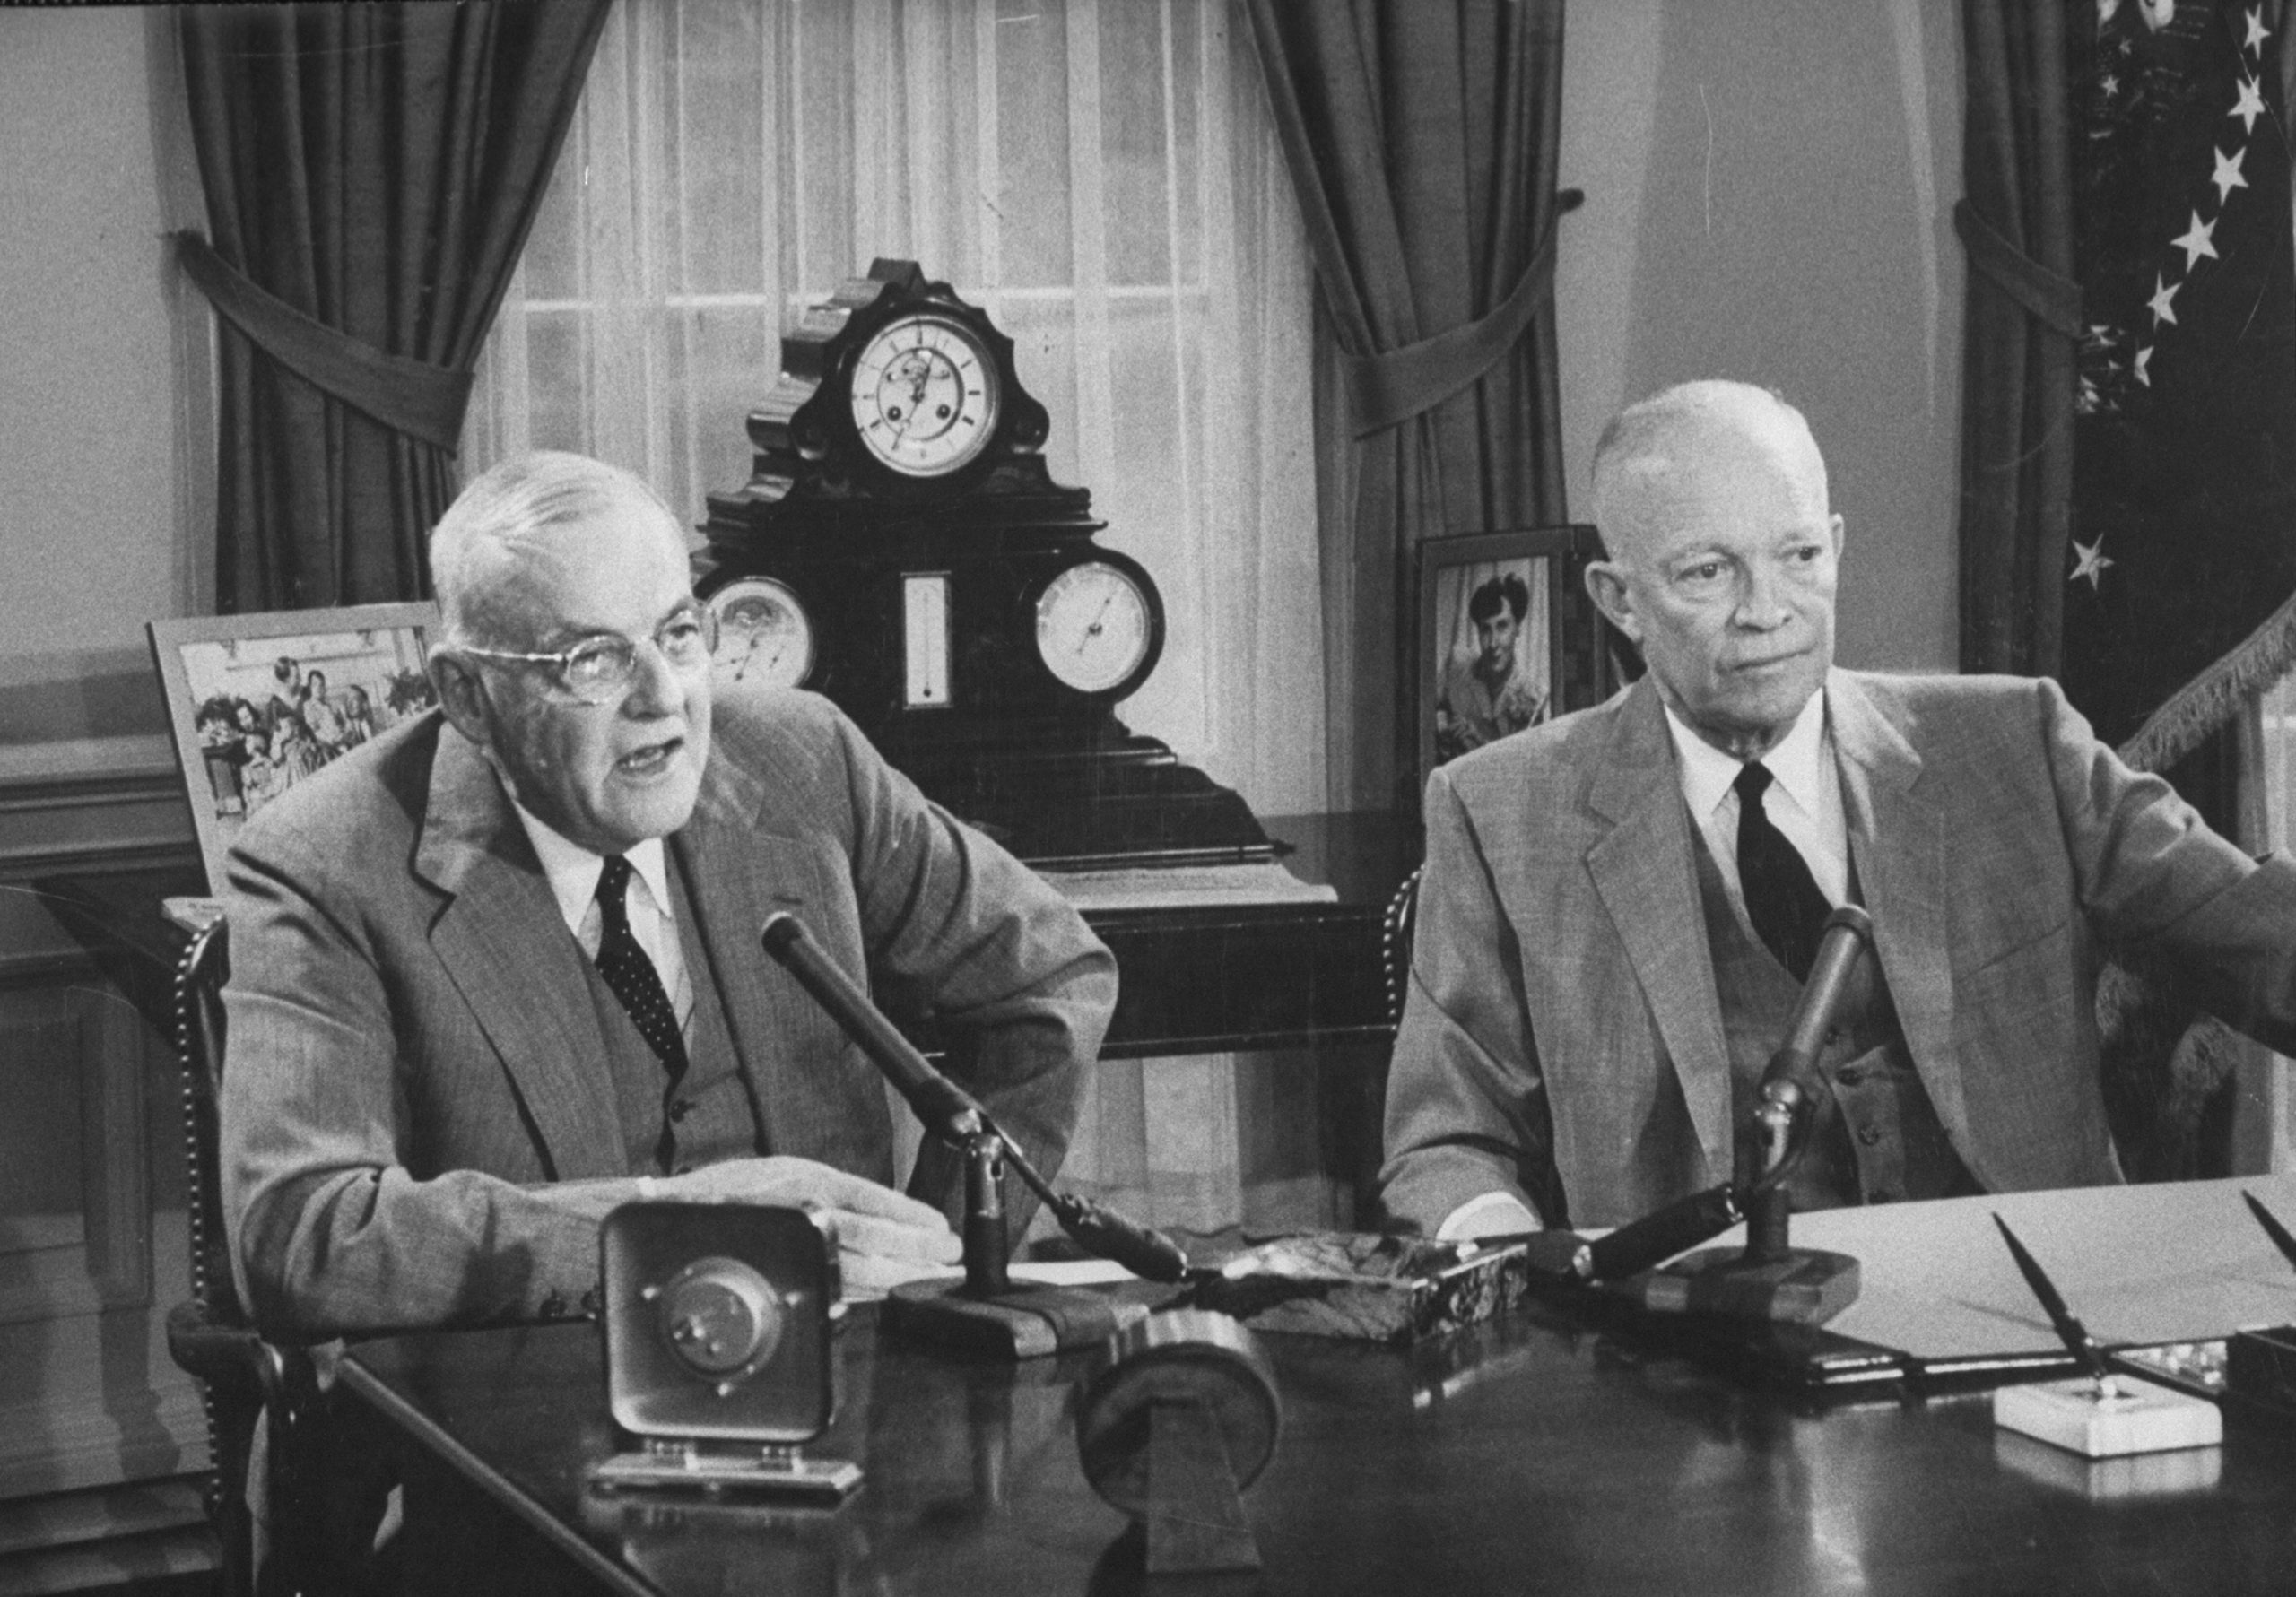 John Foster Dulles and Dwight Eisenhower